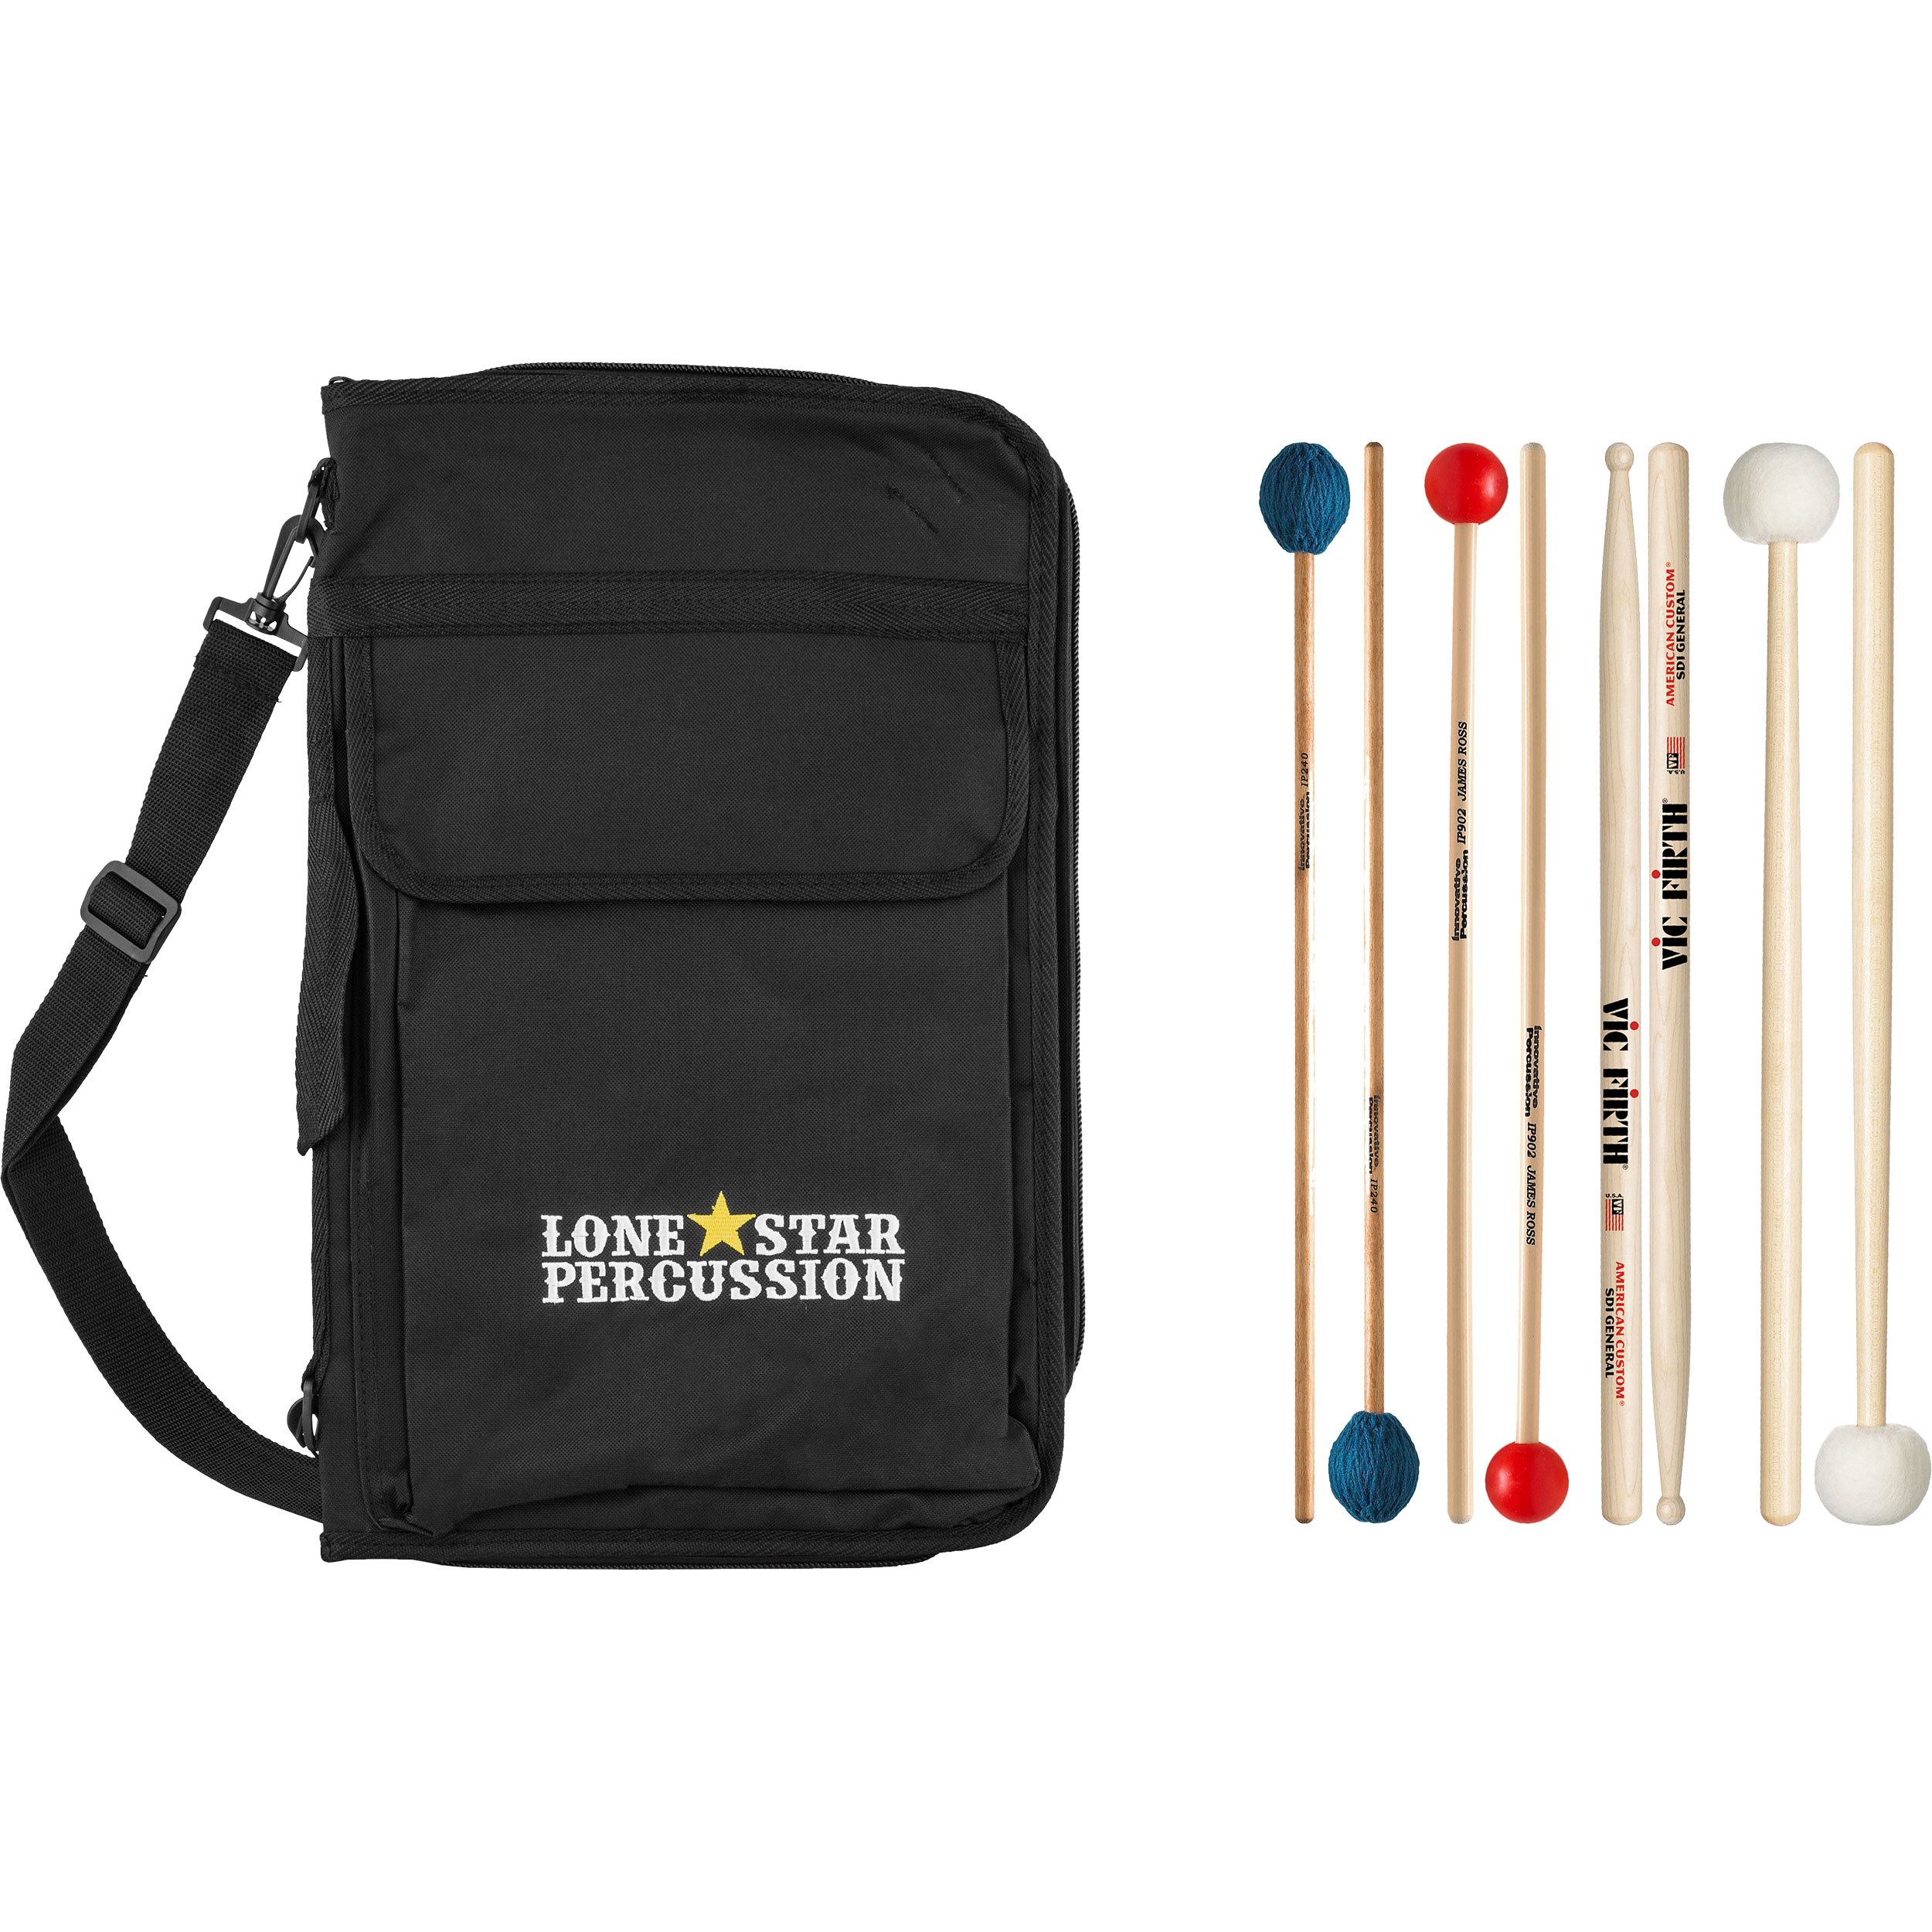 Lone Star Percussion Deluxe Stick & Mallet Pack